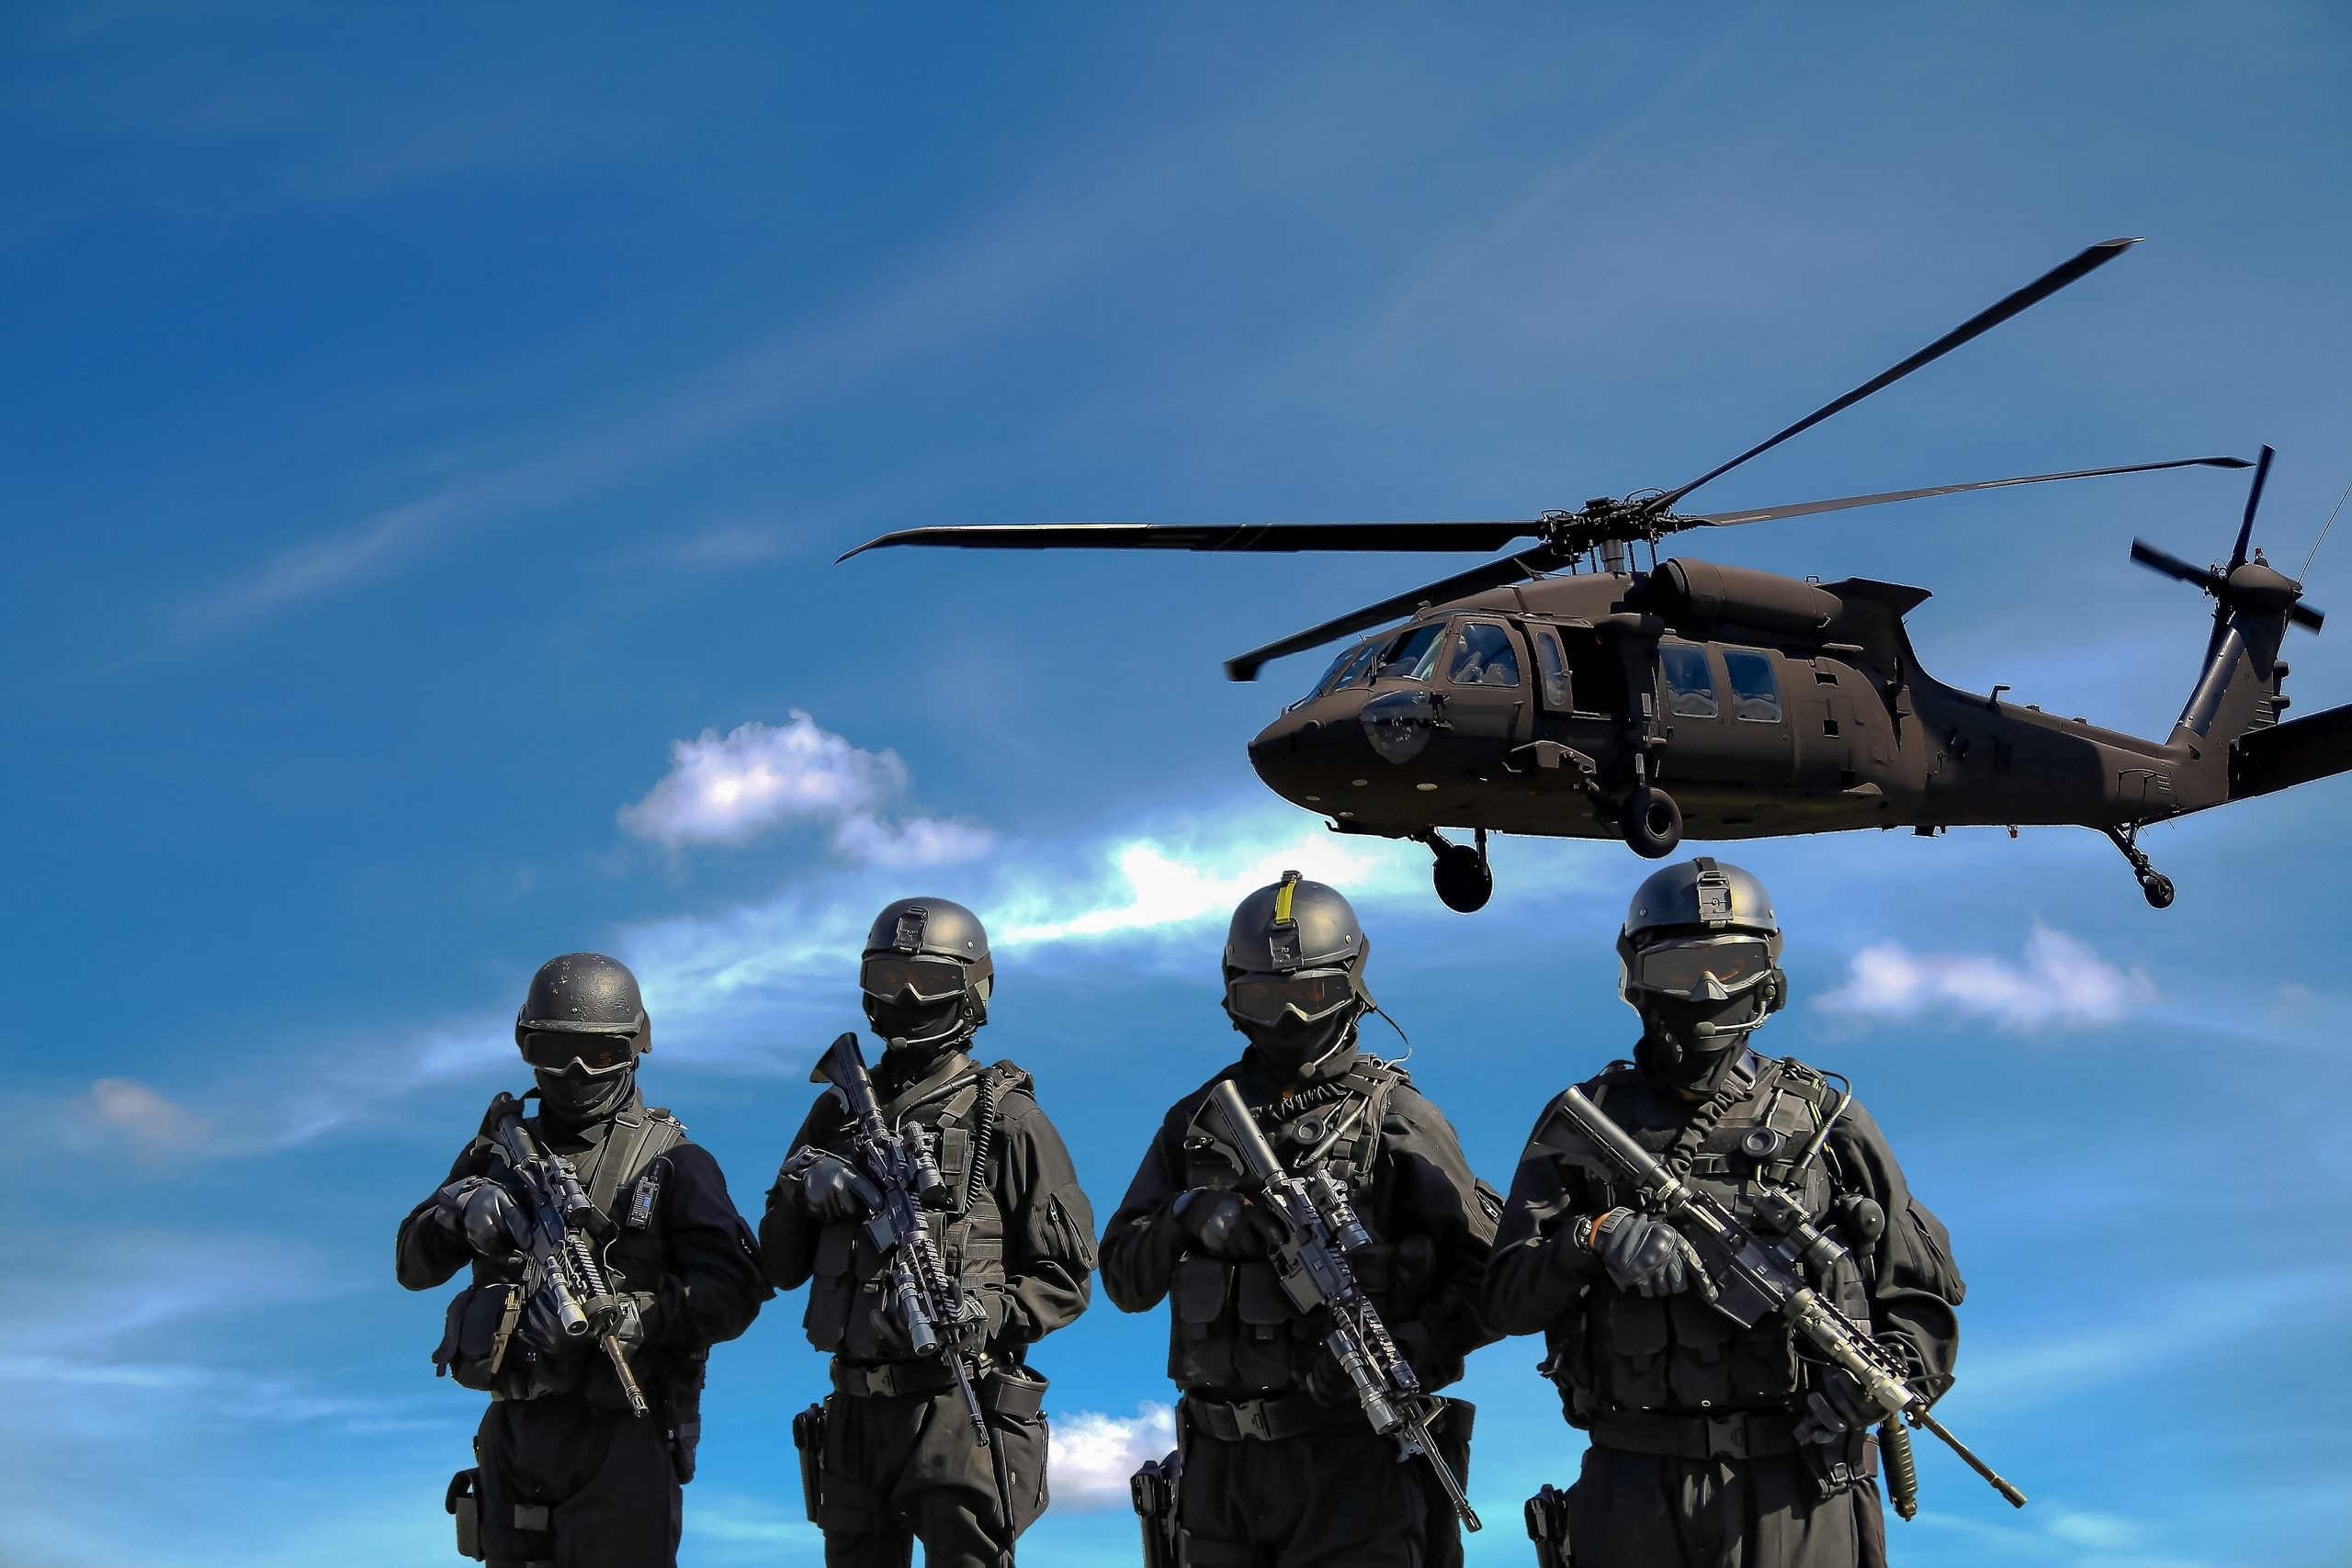 2560x1707 Soldiers of Israeli army wallpaper in high quality Cool Israeli air force  wallpaper